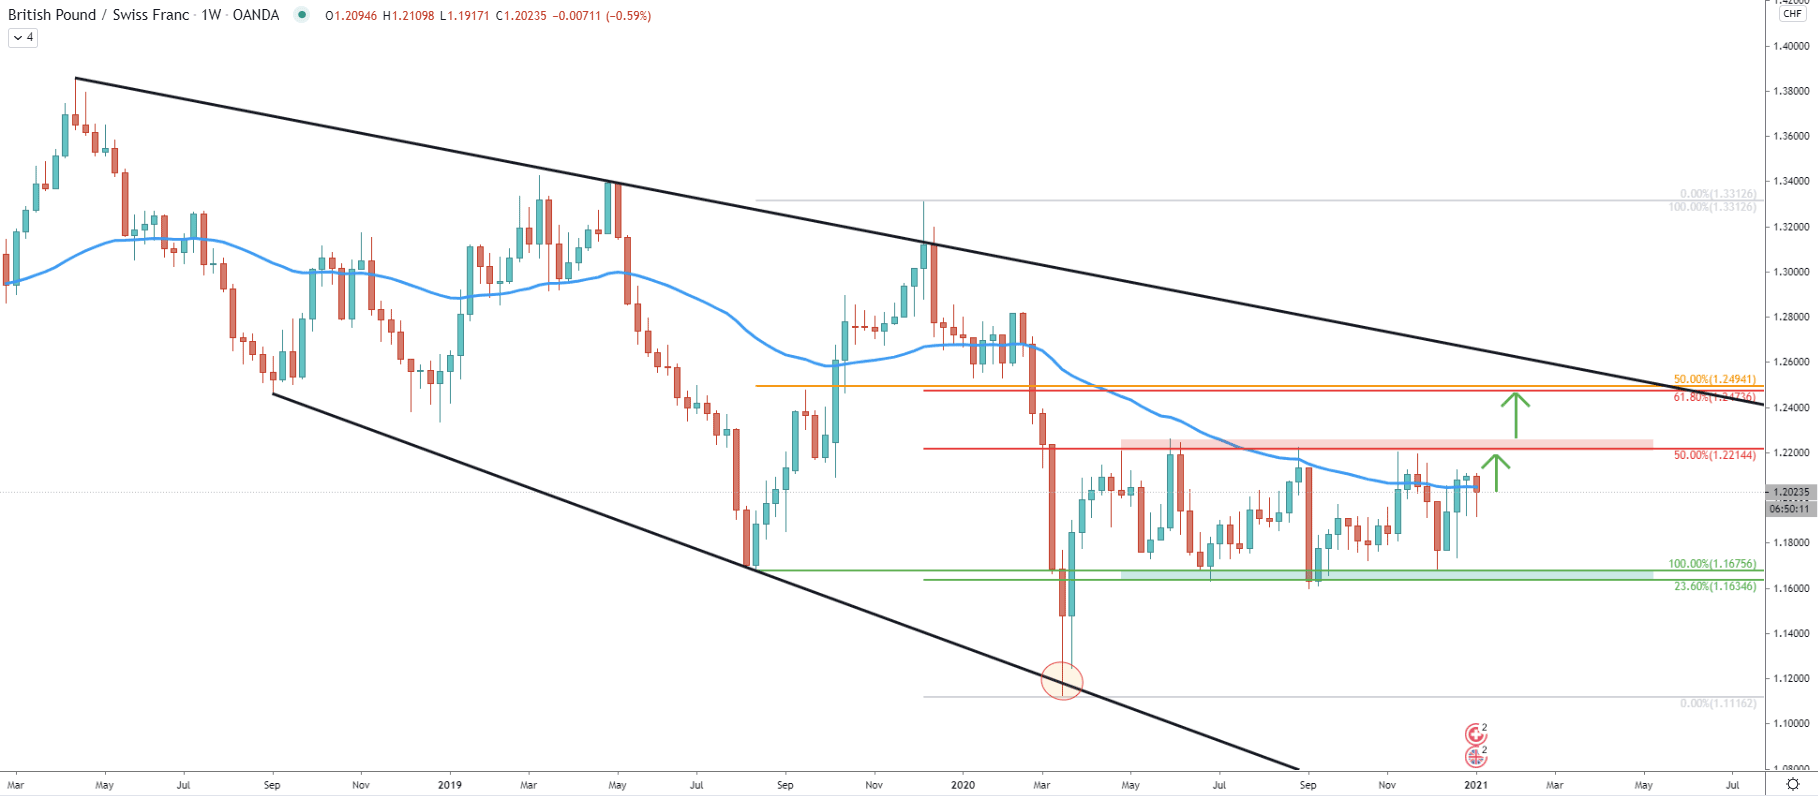 GBP/CHF Weekly Technical Analysis 8 Jan 2021